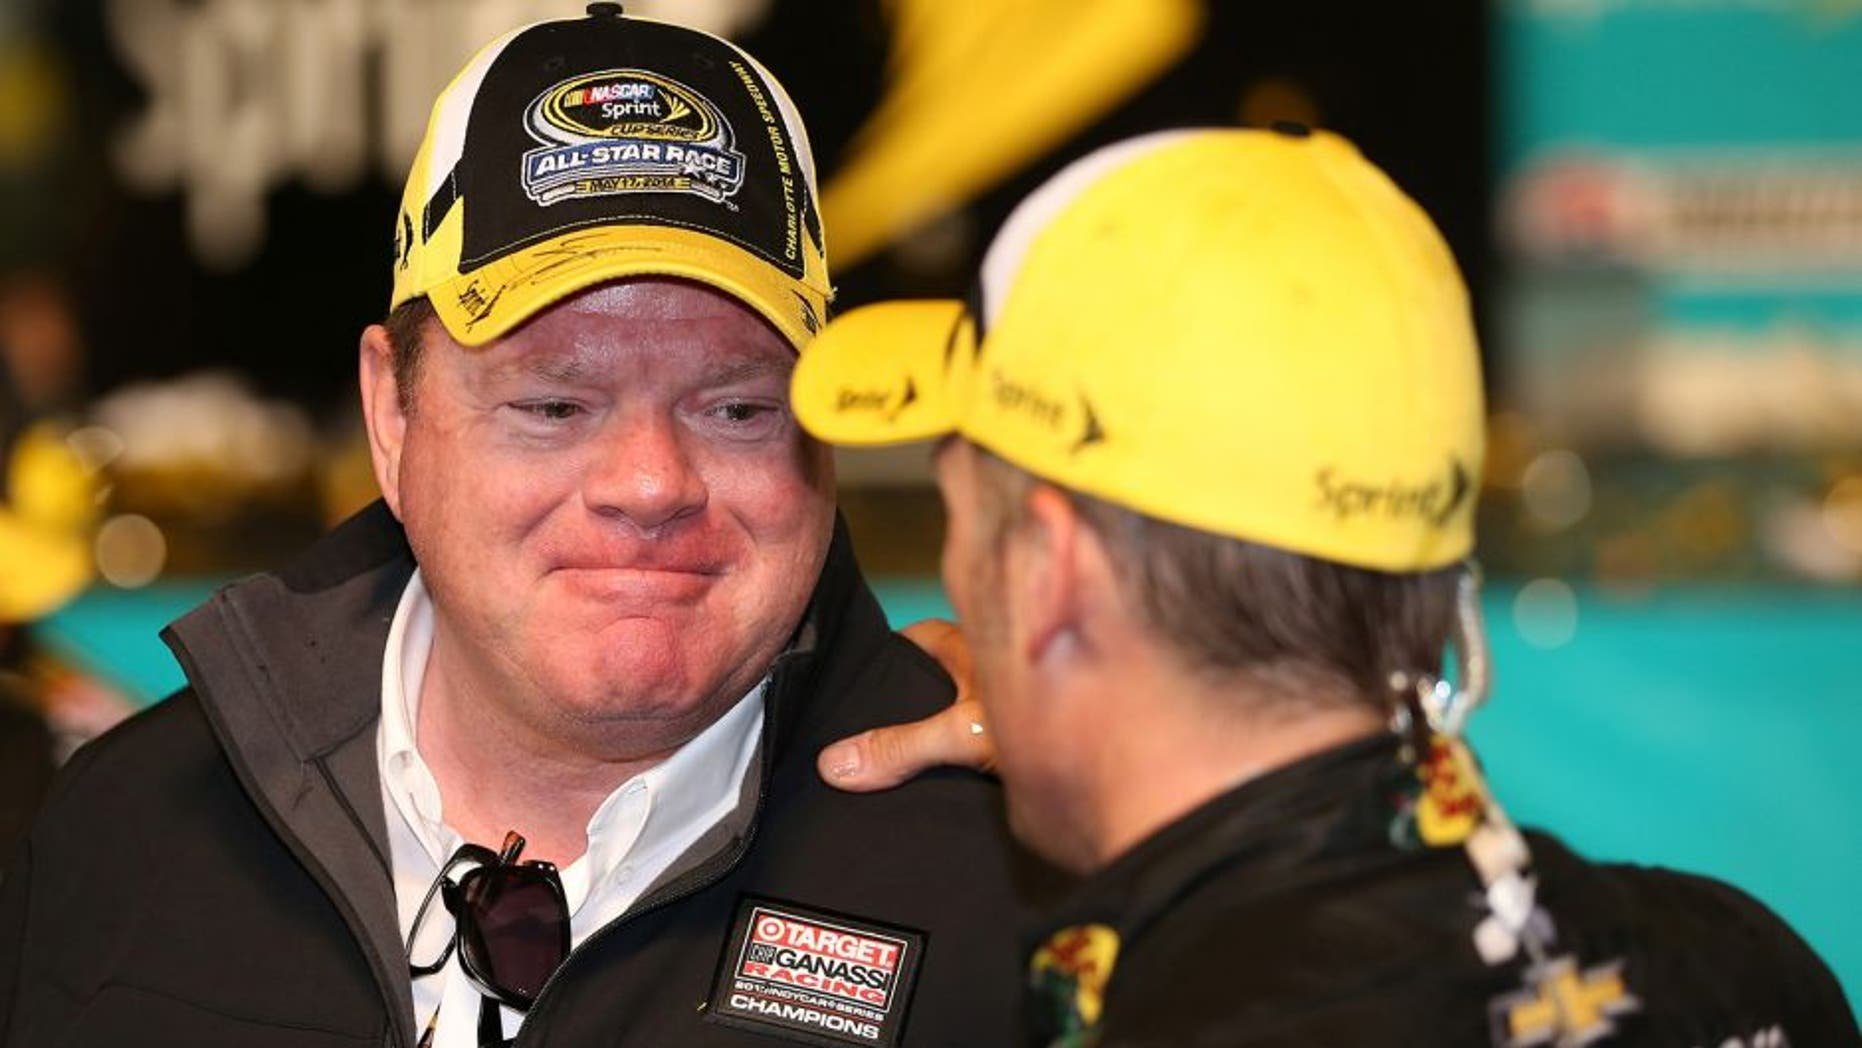 CHARLOTTE, NC - MAY 17: Chip Ganassi (L), owner of Chip Ganassi Racing, talks so Jamie McMurray, driver of the #1 Bass Pro Chevrolet, in victory lane after the NASCAR Sprint Cup Series Sprint All-Star Race at Charlotte Motor Speedway on May 17, 2014 in Charlotte, North Carolina. (Photo by Chris Graythen/Getty Images)